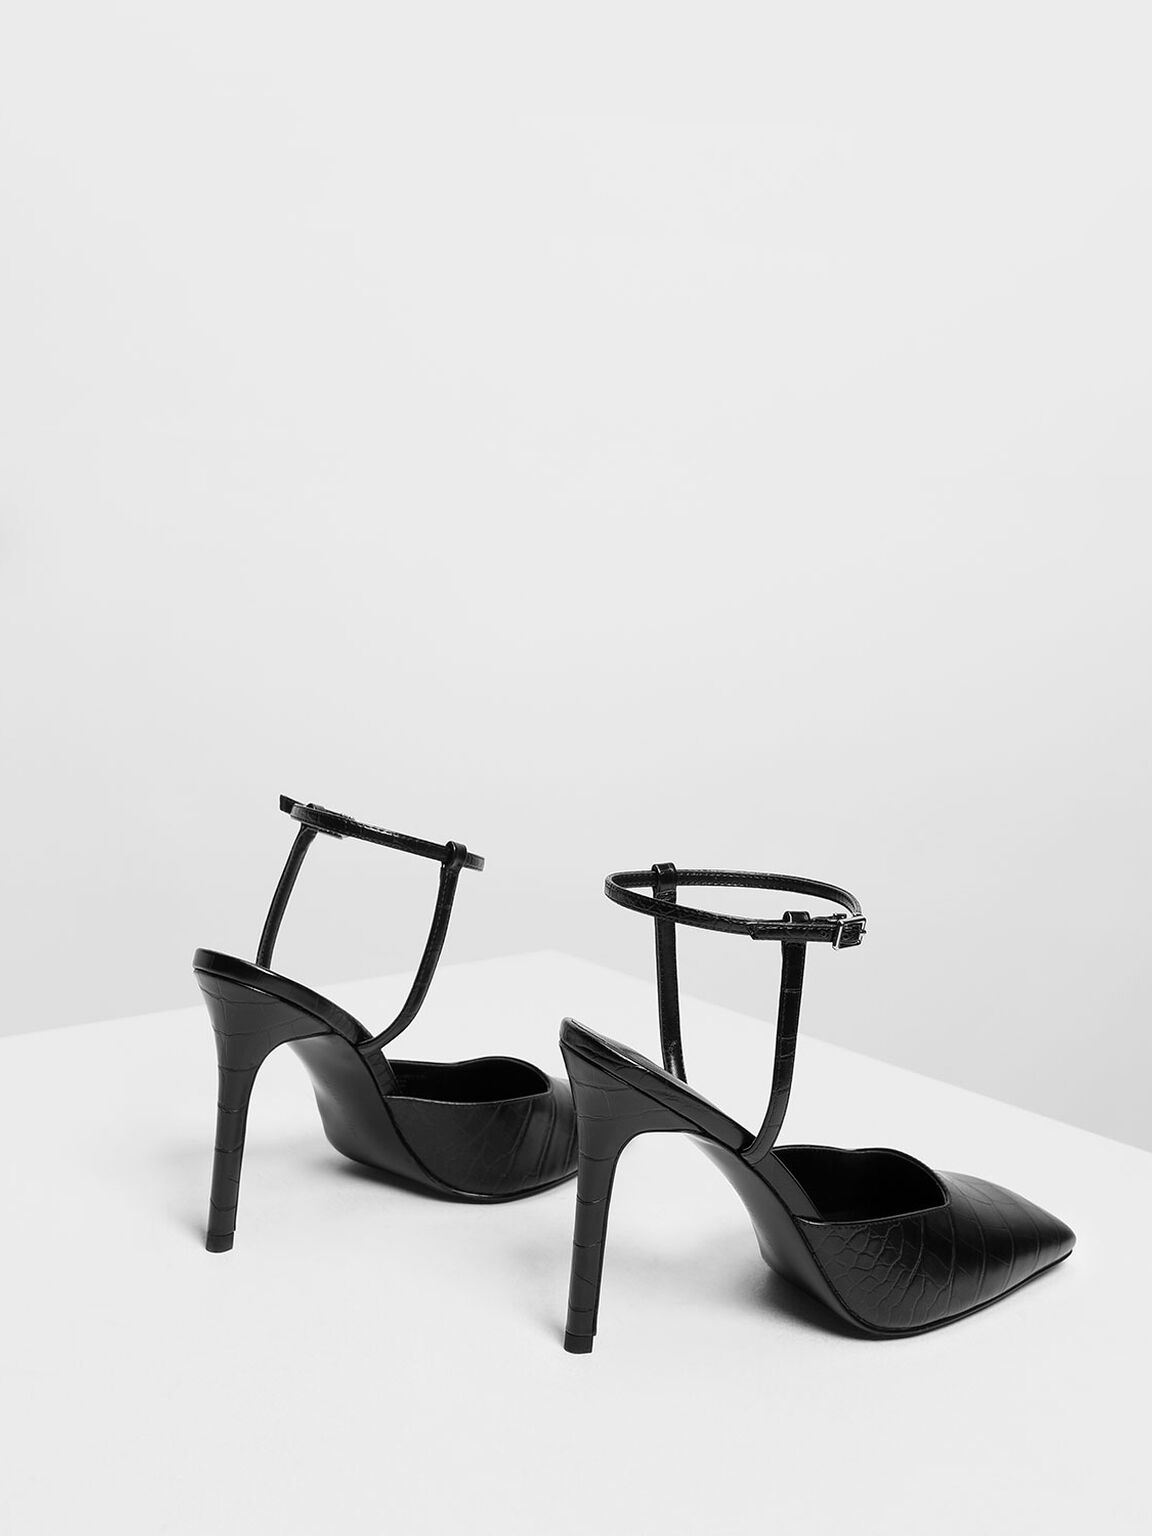 Square Toe Croc-Effect Stiletto Pumps, Black, hi-res